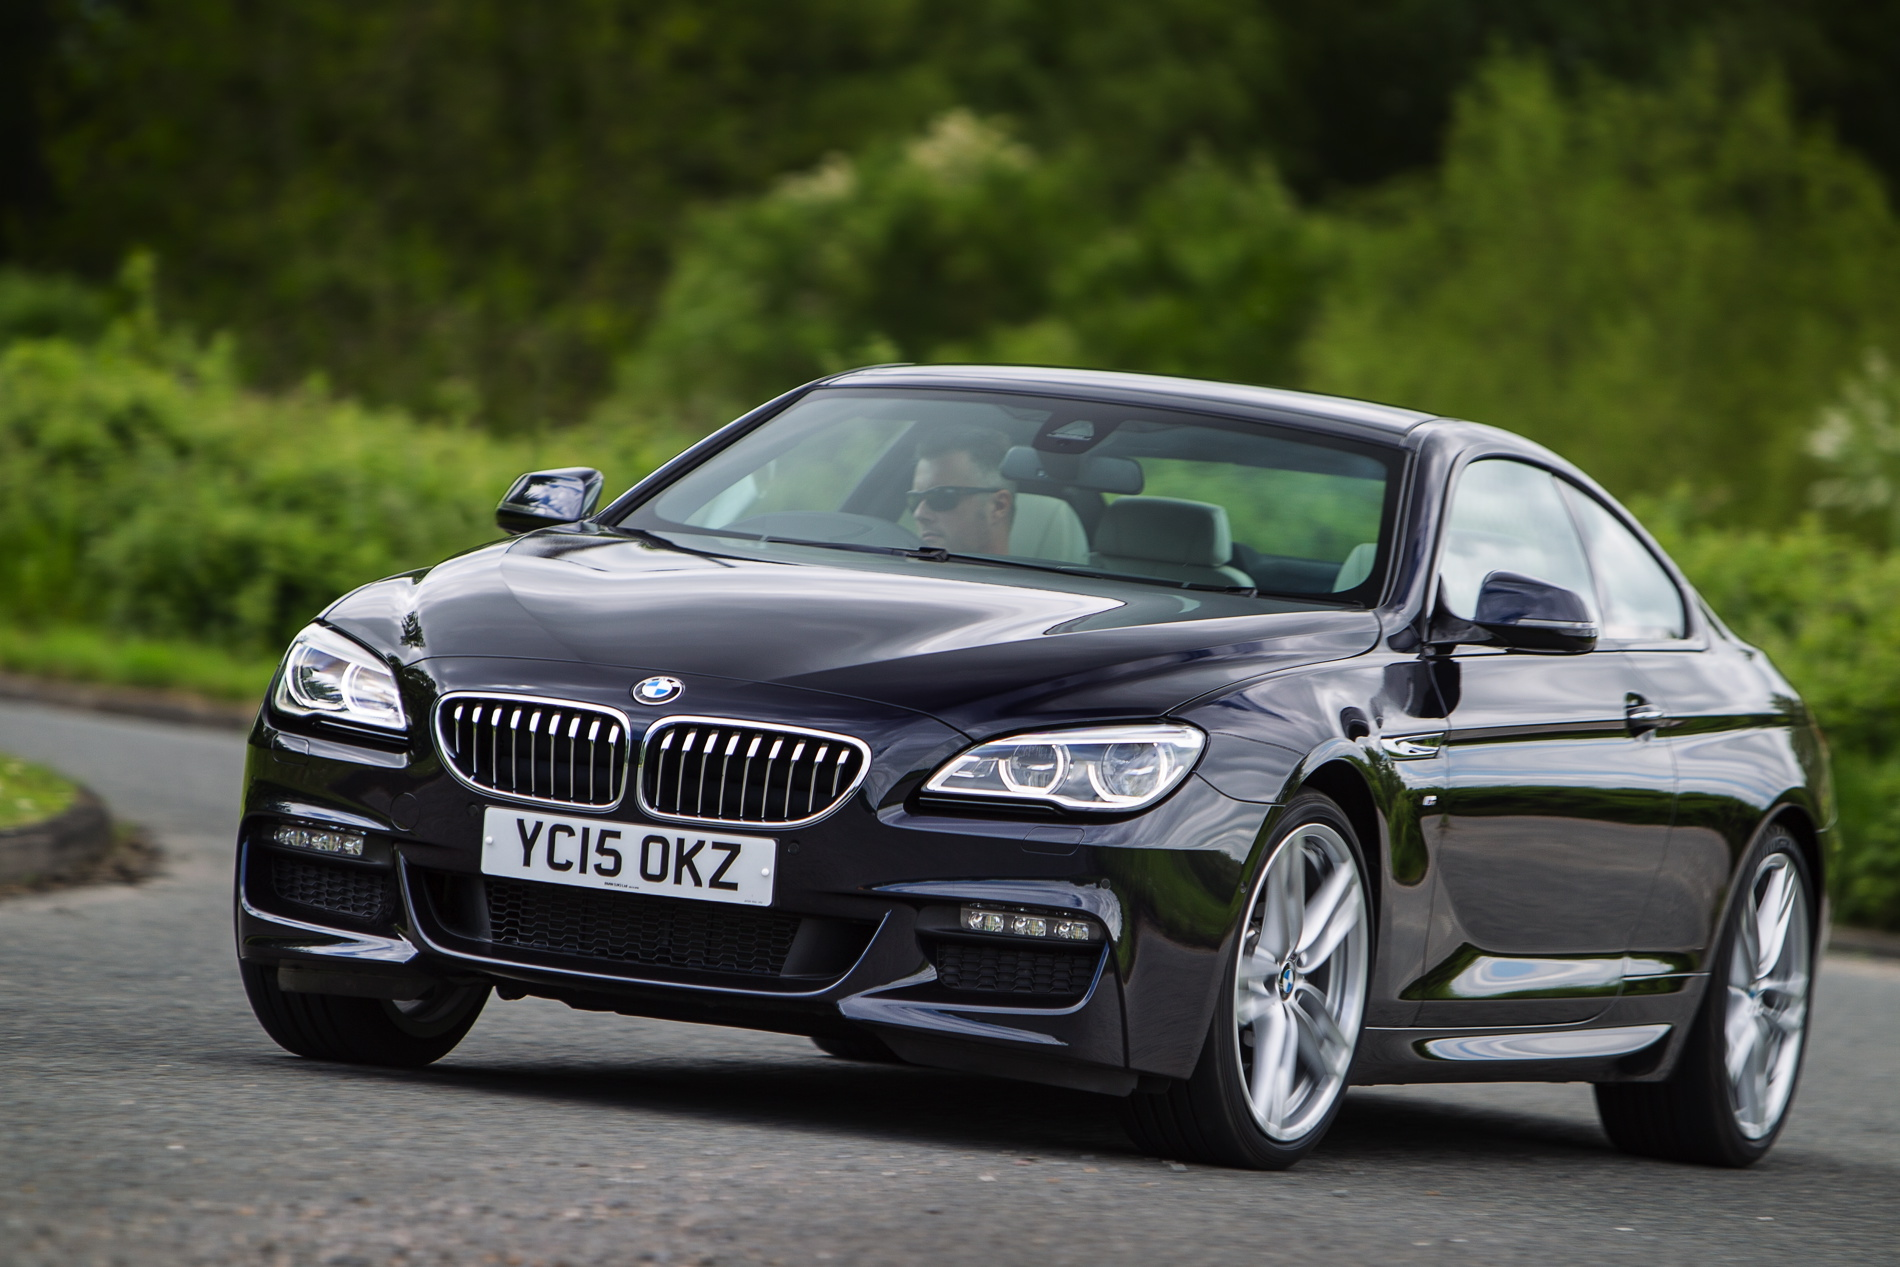 2015 bmw 6 series facelift 1900x1200 wallpapers 20